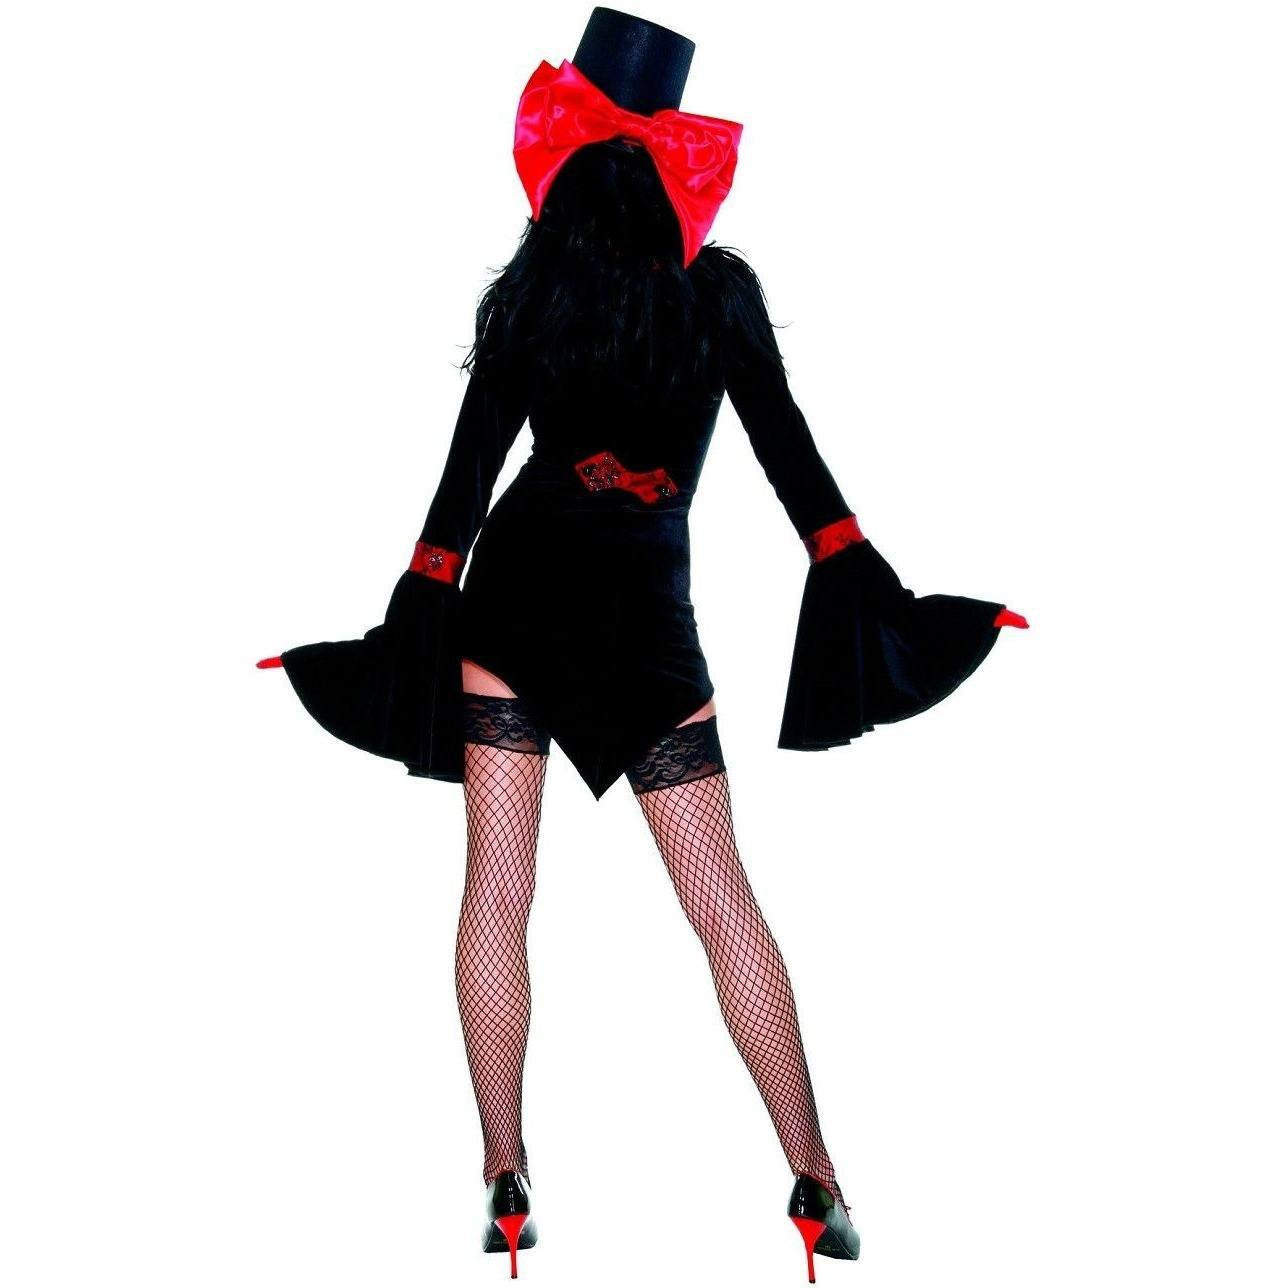 Vampire fancy dress costume - Flirtywomen